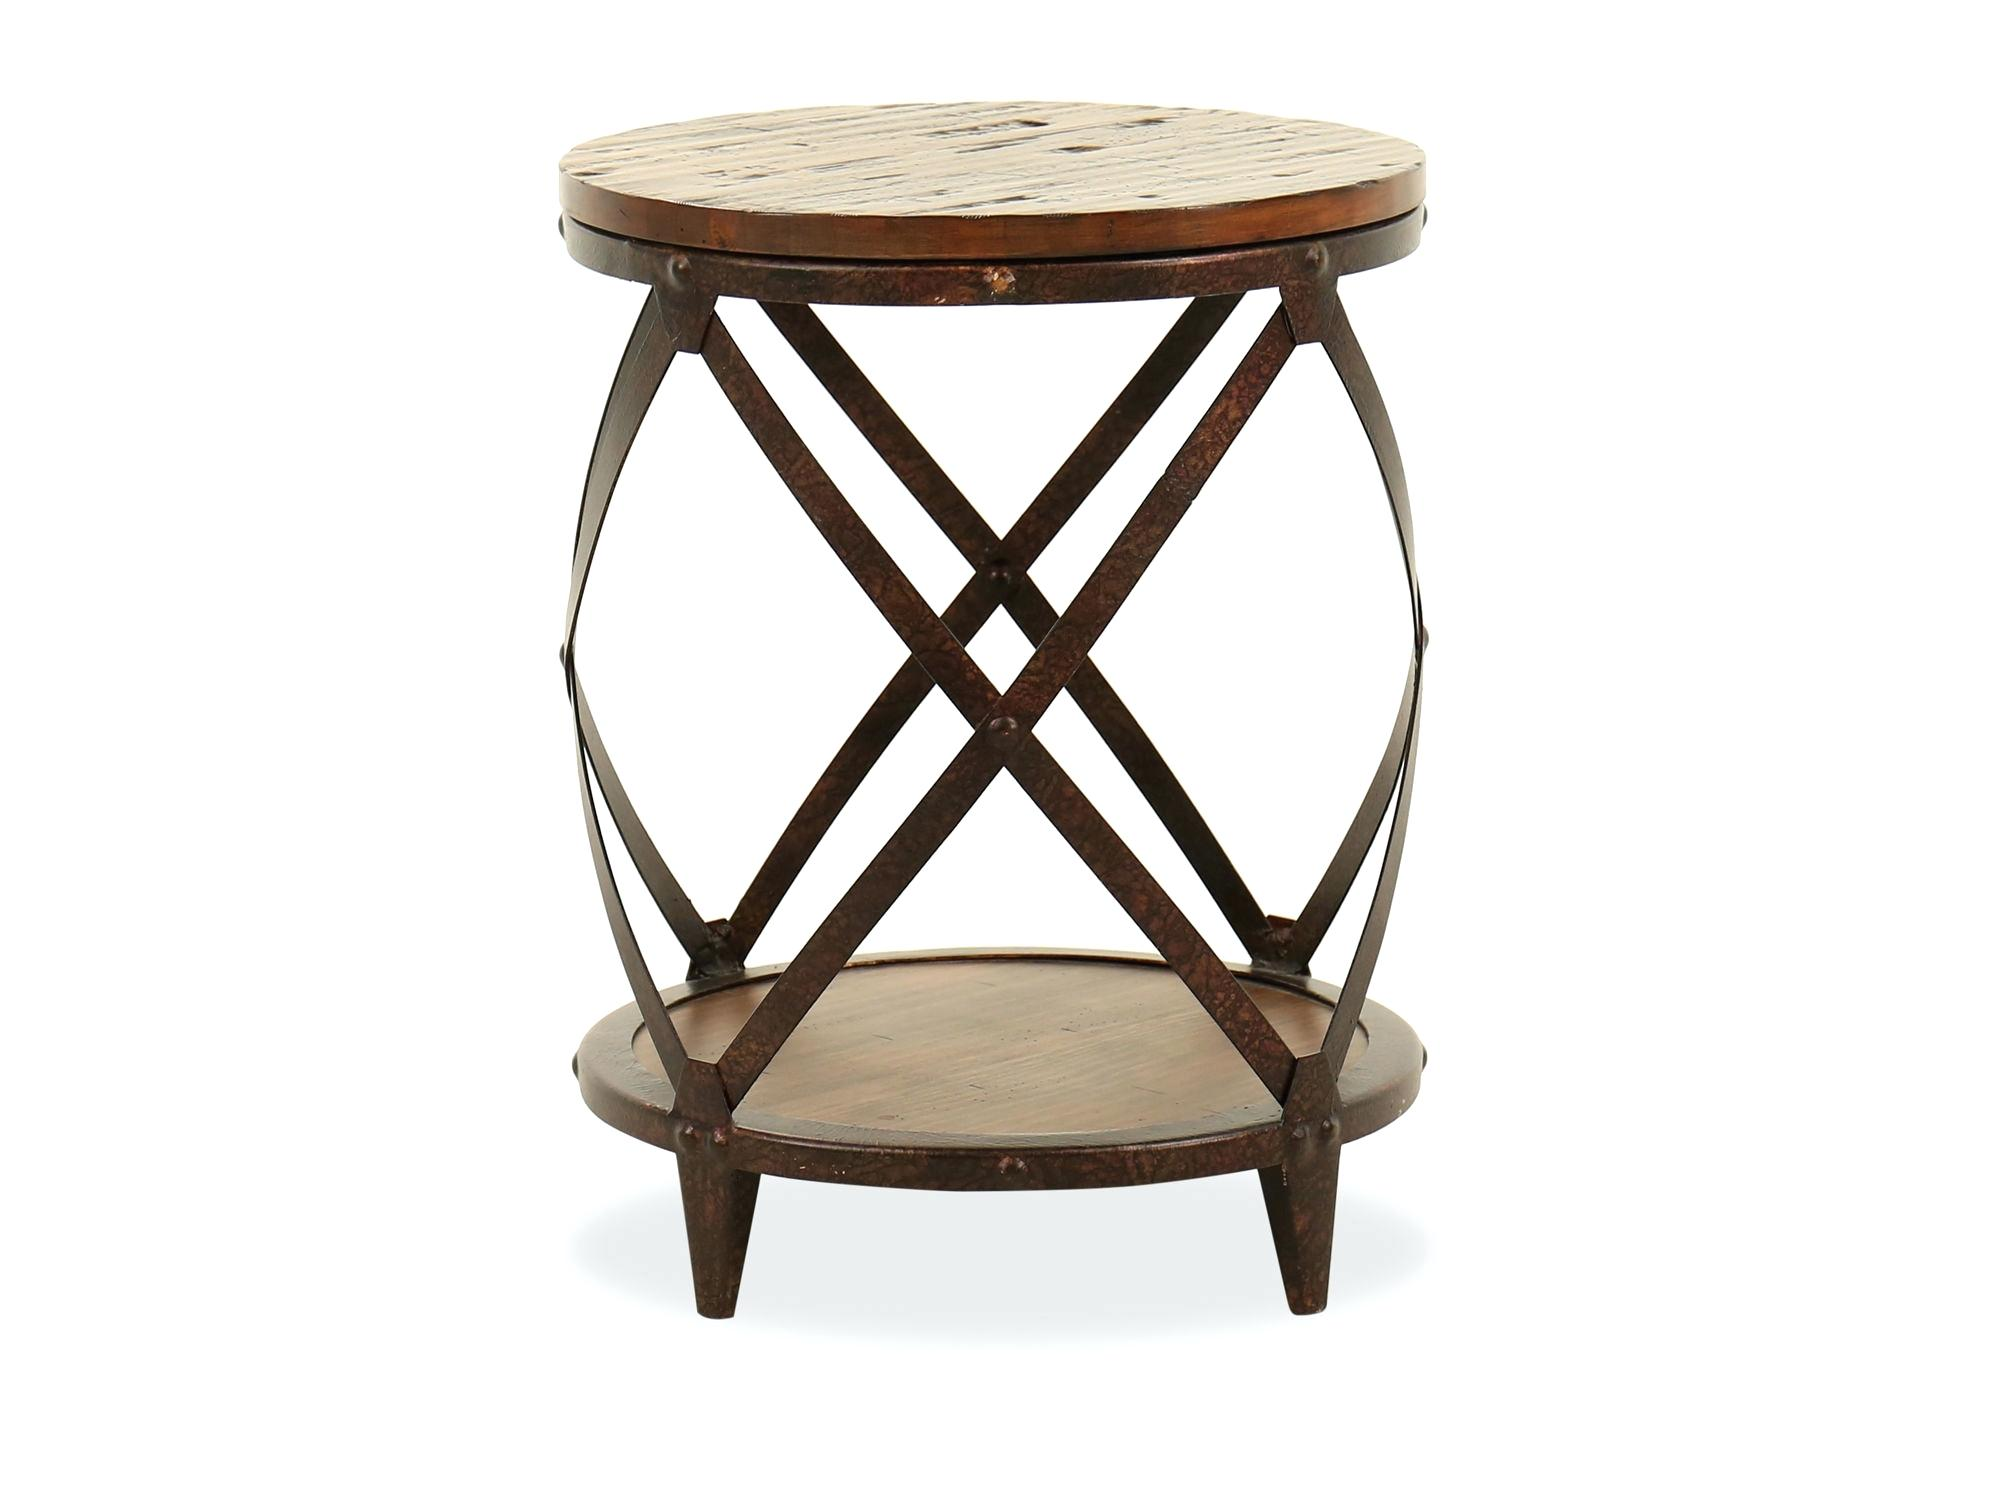 solid wood accent tables faux round table square target small oval lani mango avani drum end side brothers kitchen engaging distressed transitional rich brown unfinished full size